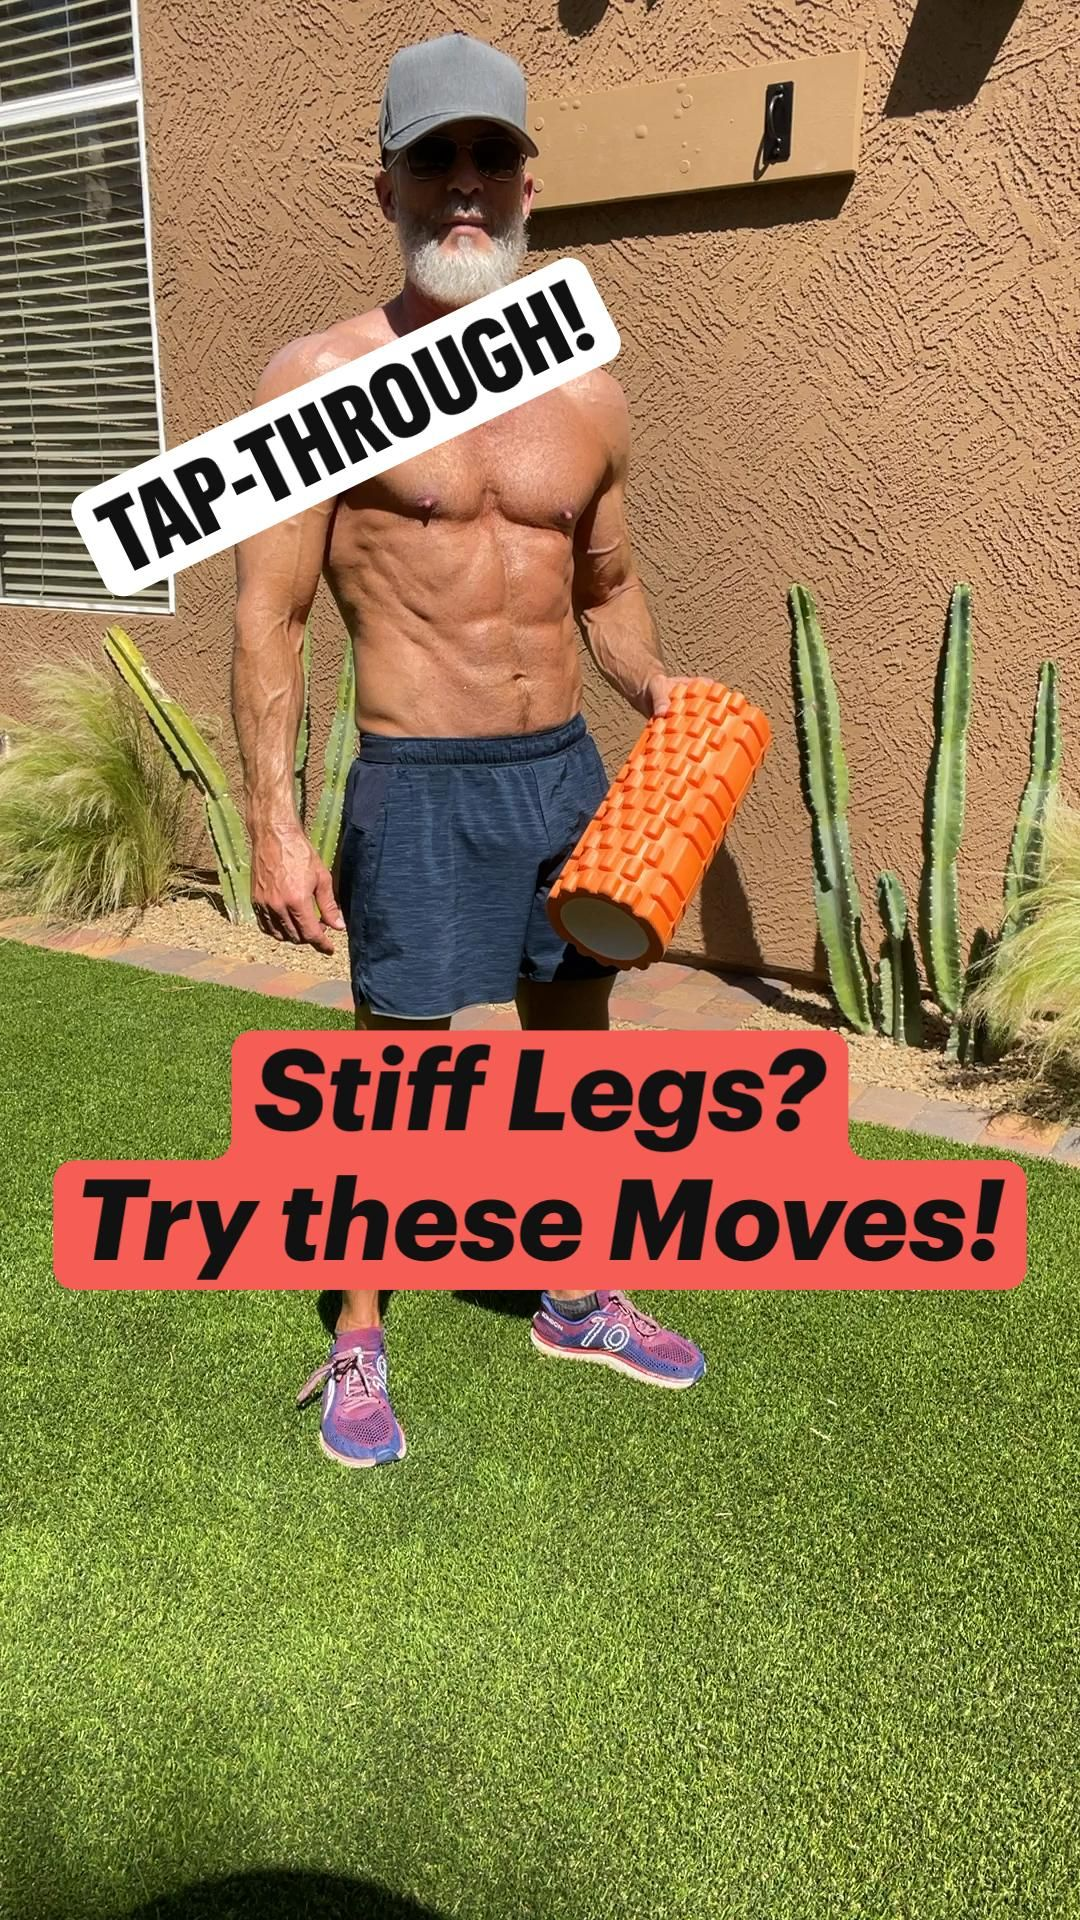 Stiff Legs? Try these Moves!